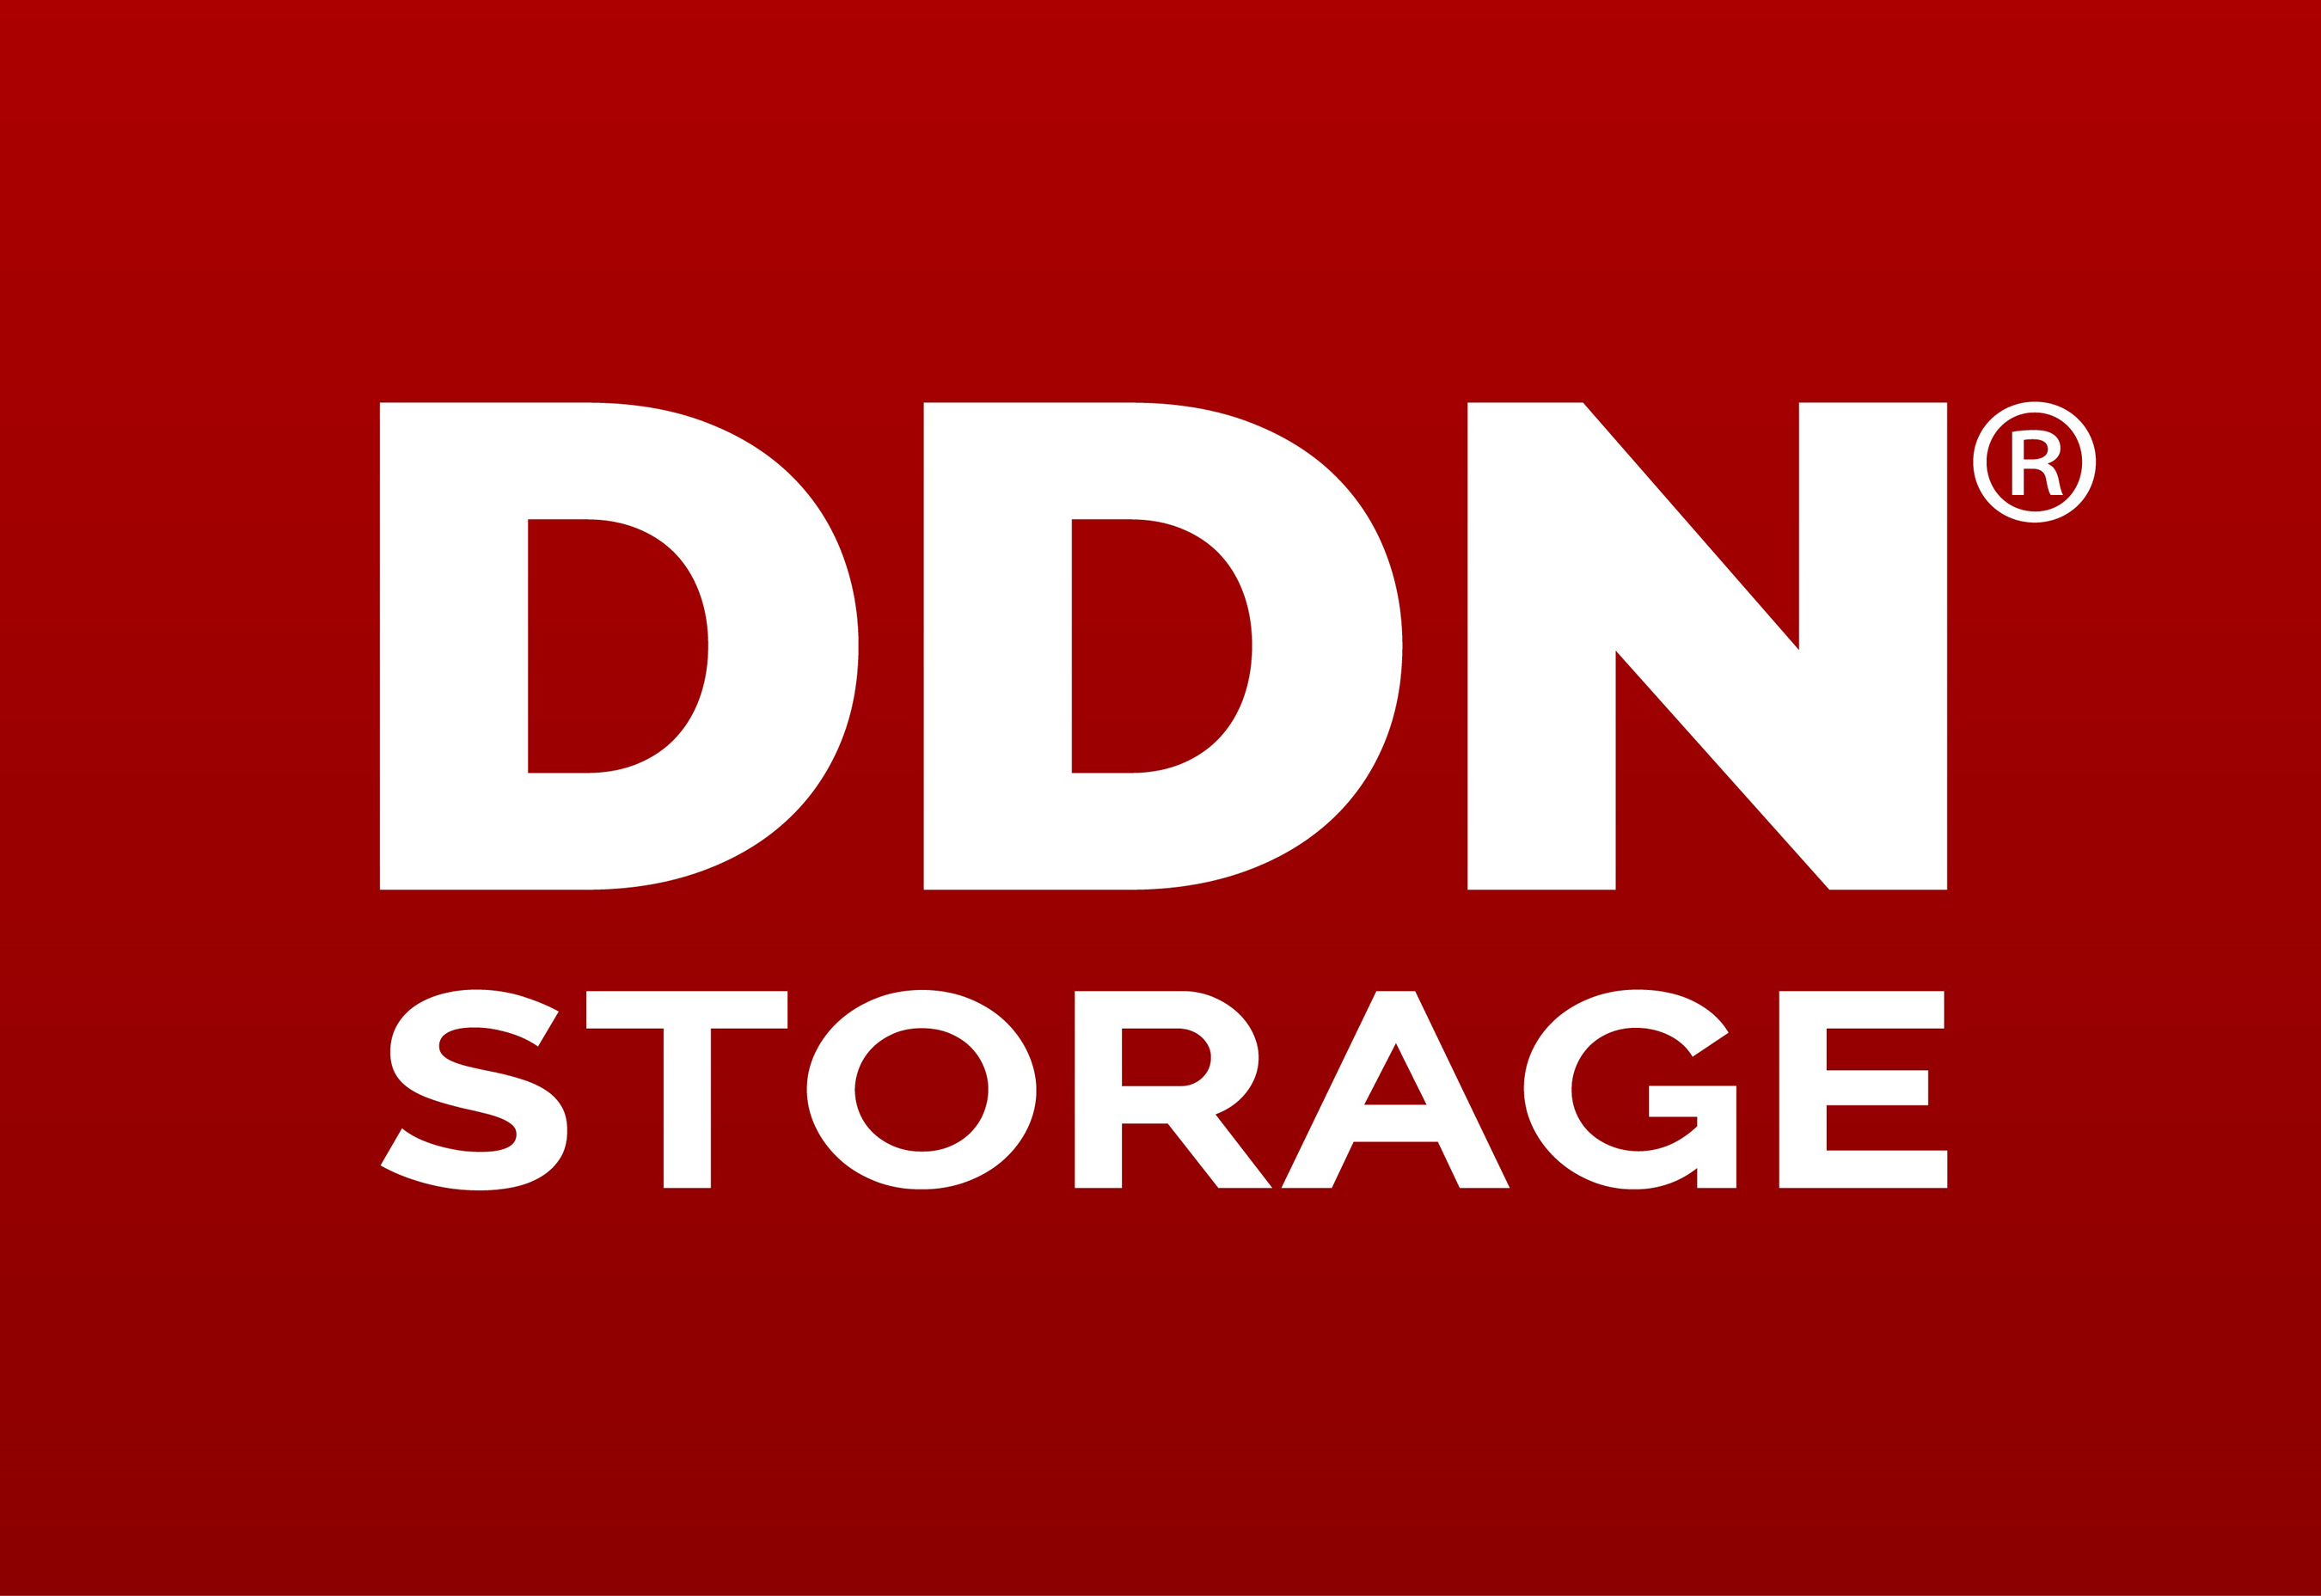 DDN's HPC Storage Leadership Recognized by HPCwire Readers and Editors